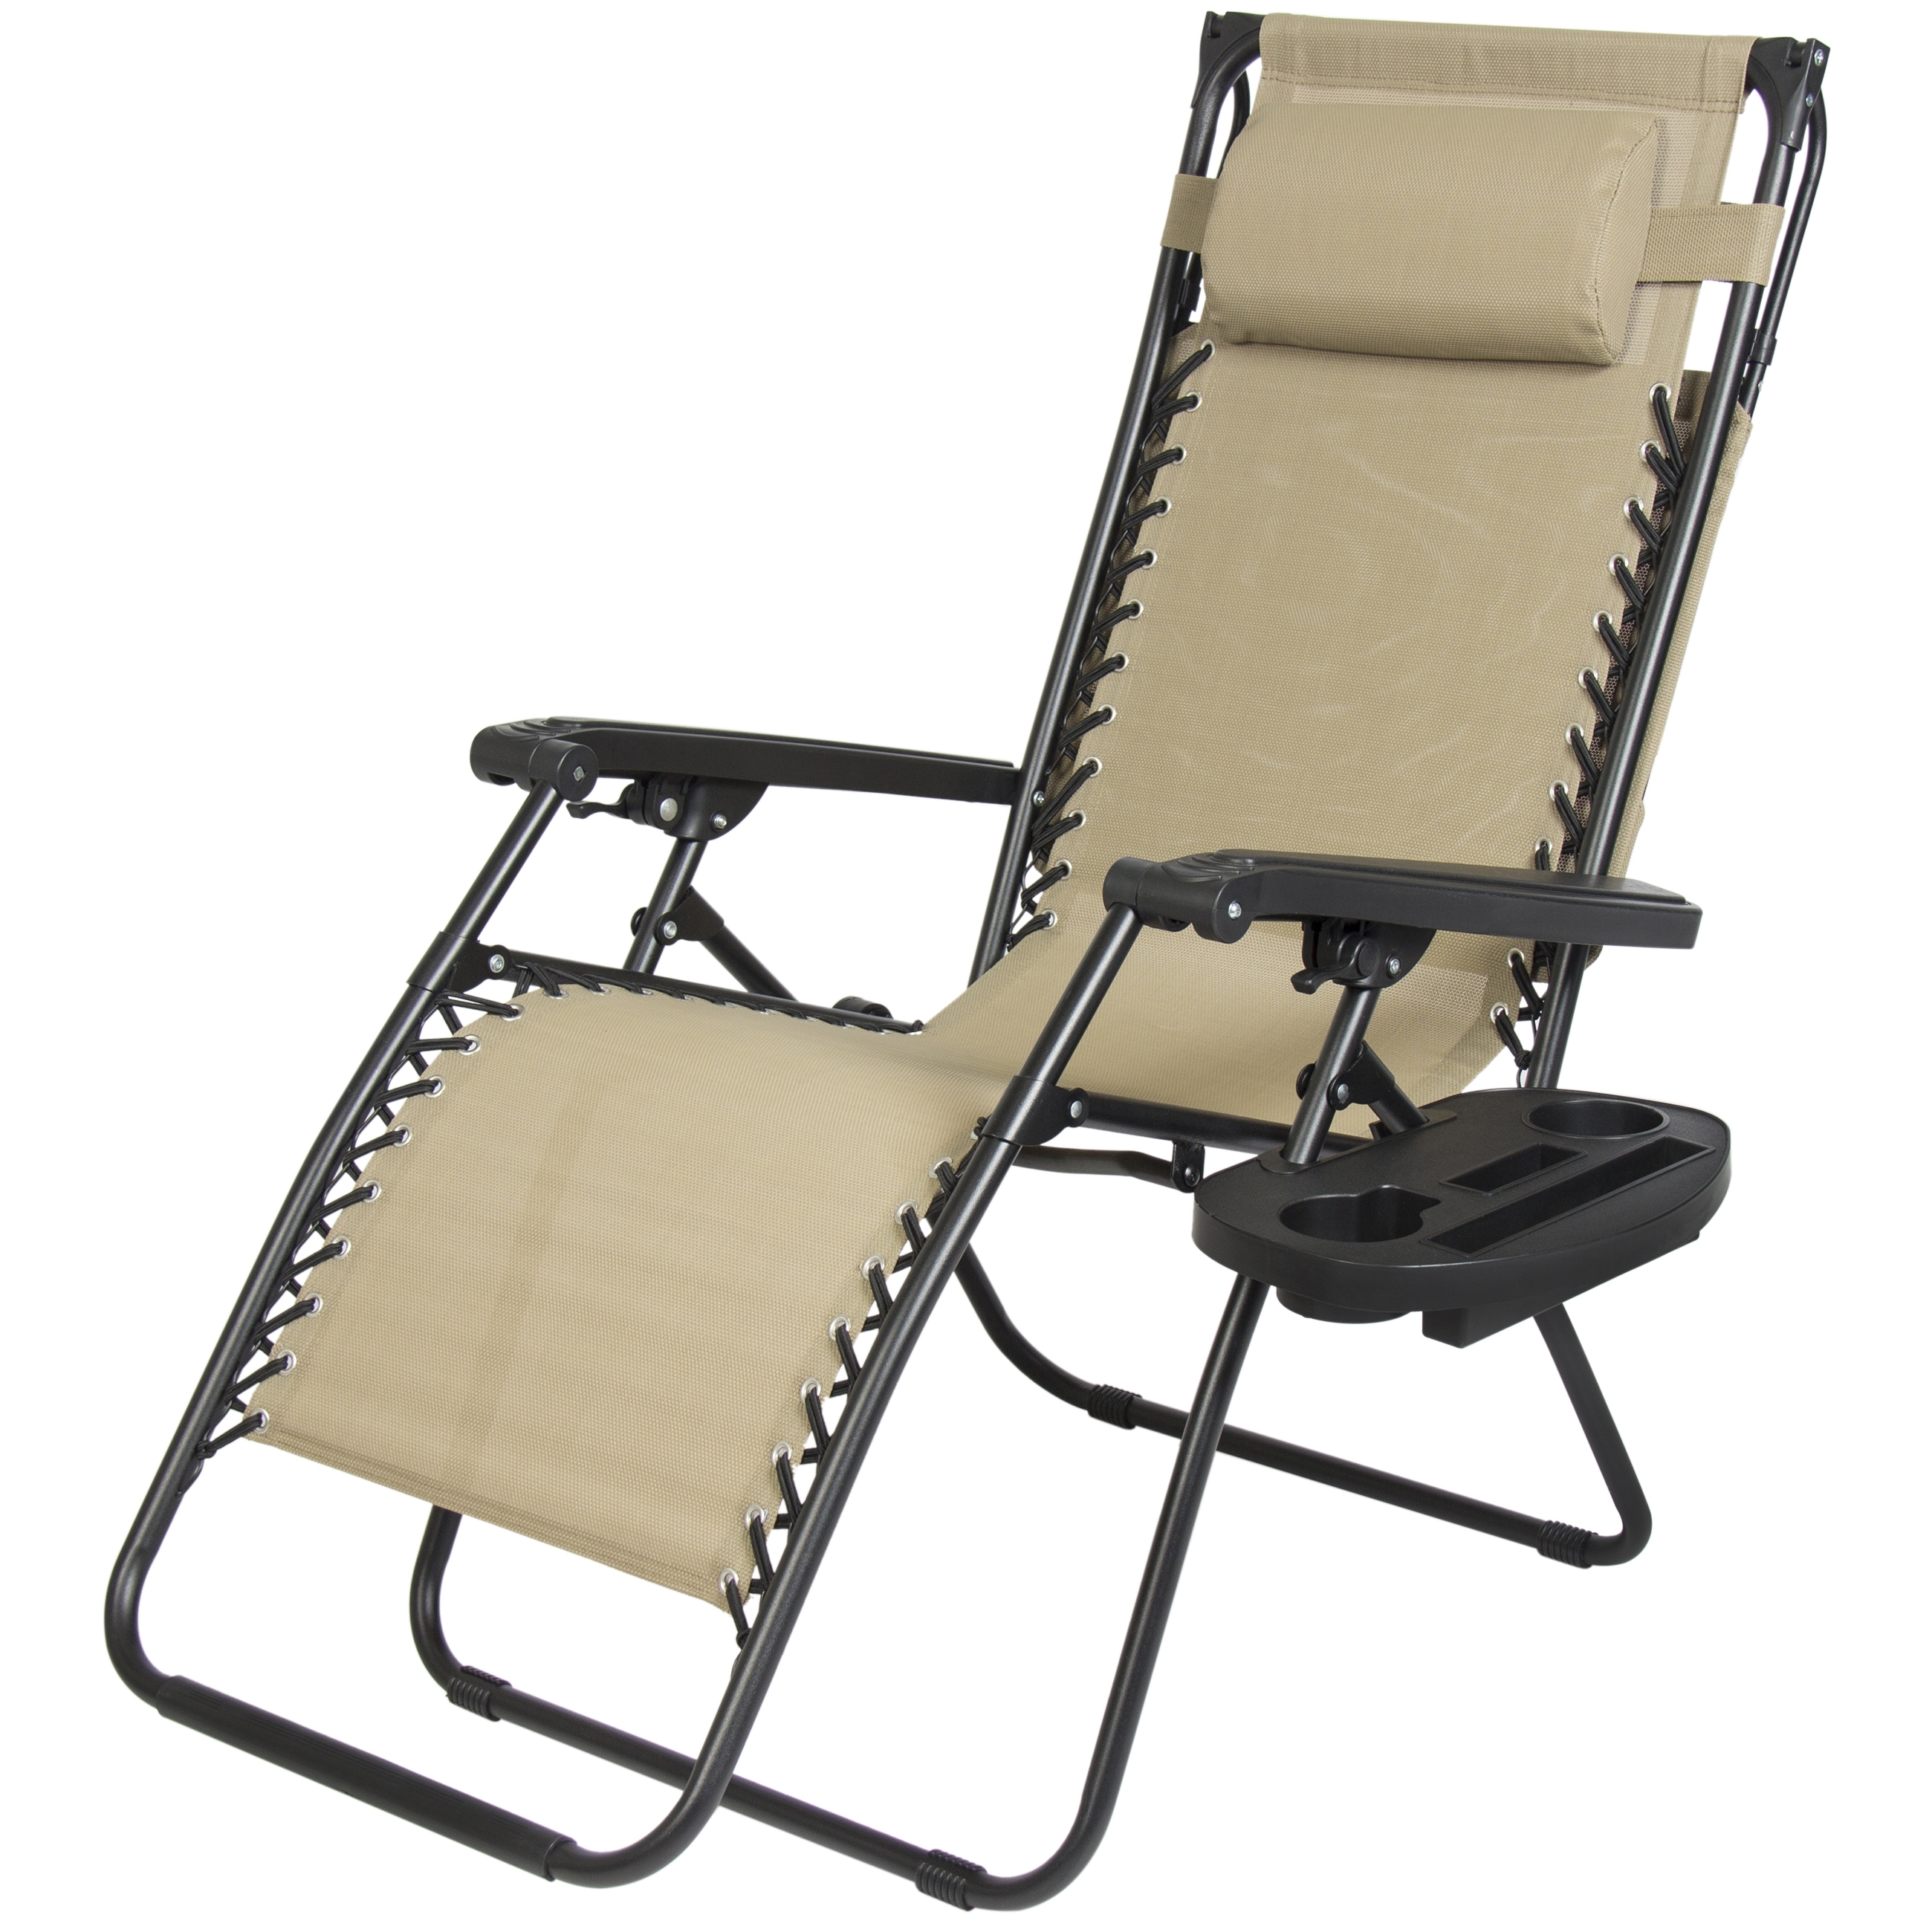 Preferred Zero Gravity Chaise Lounges Intended For Zero Gravity Lounge Chairs With Canopy • Lounge Chairs Ideas (View 8 of 15)